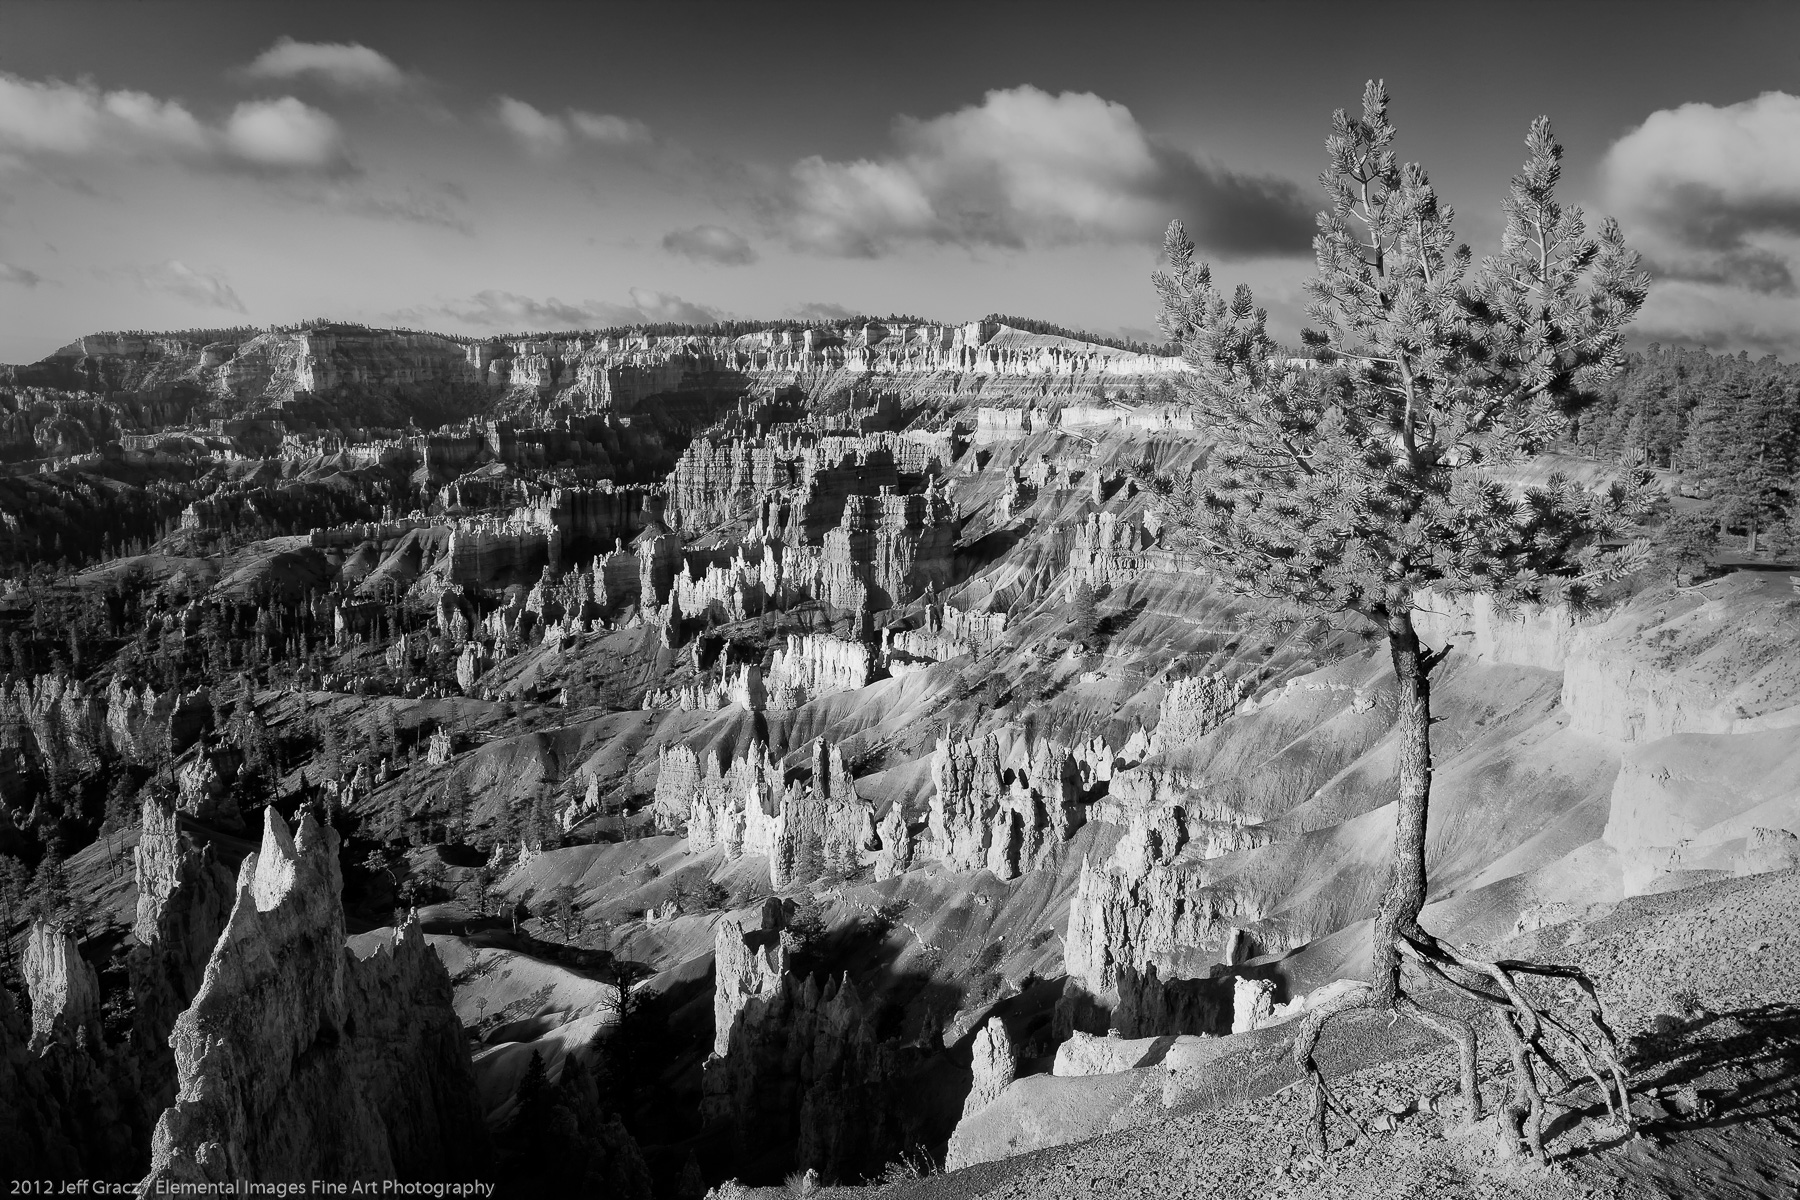 View from Bryce Canyon Rim VI | Bryce Canyon National Park |  | USA - © 2012 Jeff Gracz / Elemental Images Fine Art Photography - All Rights Reserved Worldwide